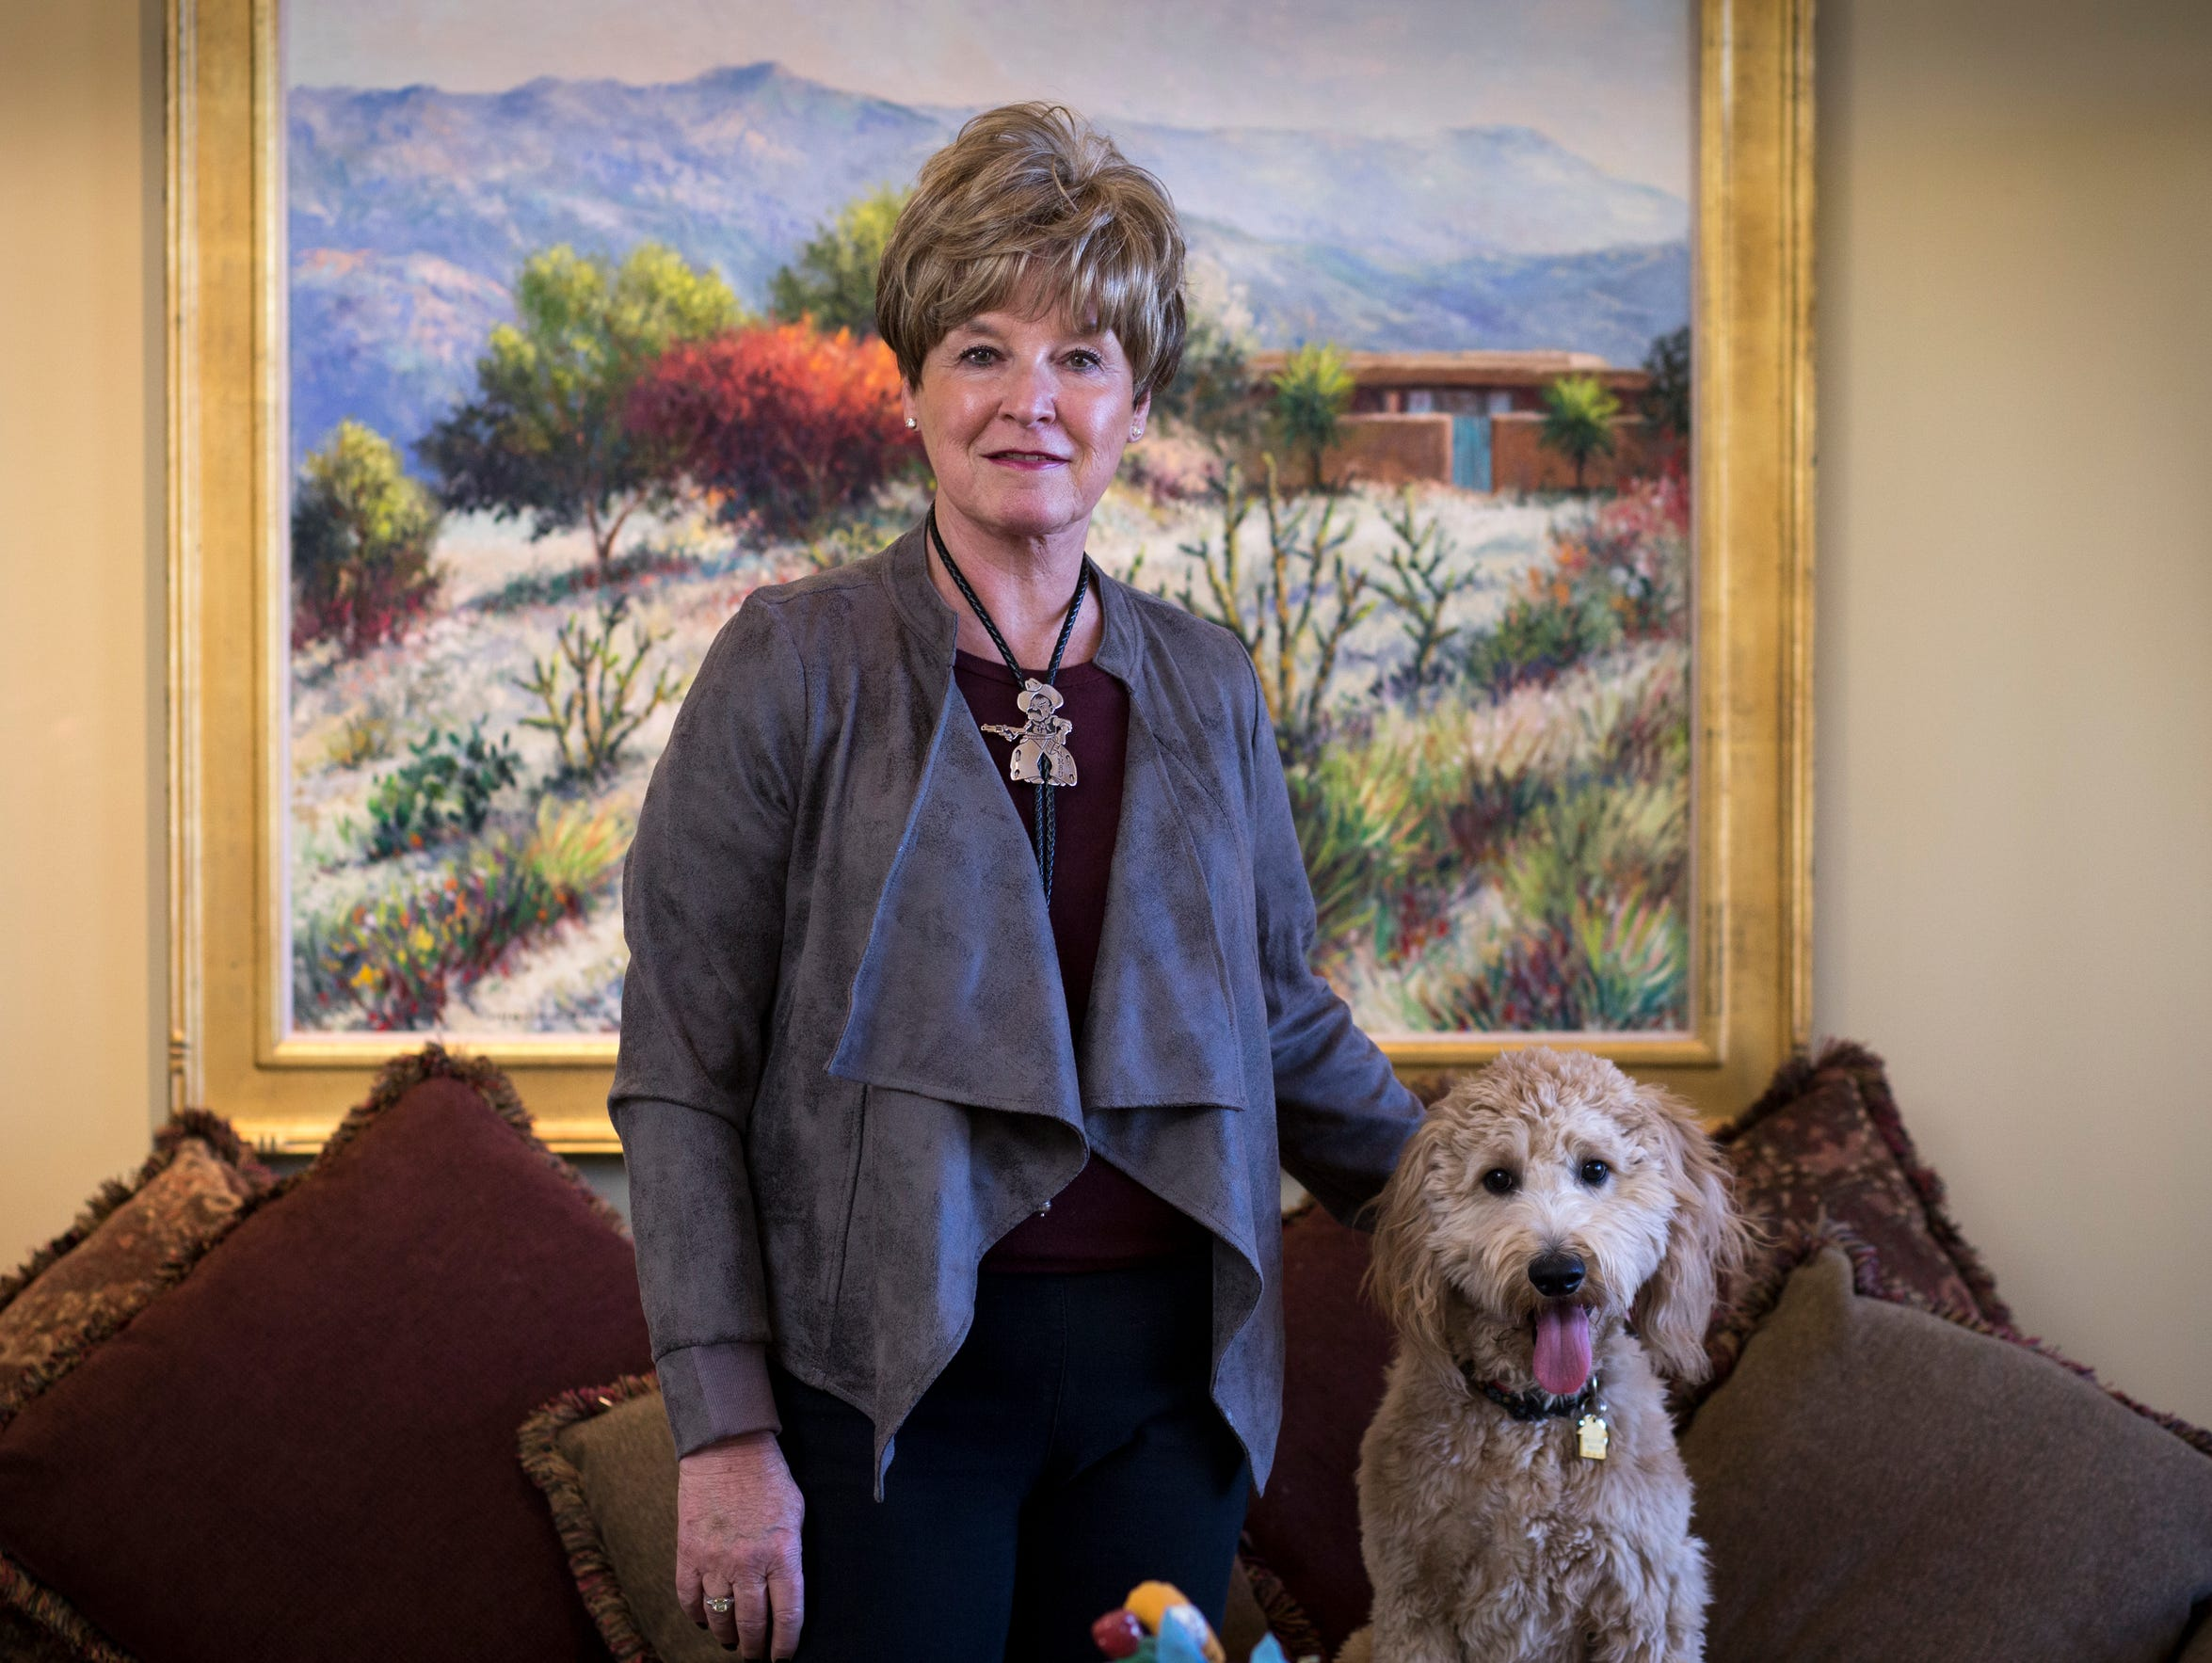 MaryLou Davis, and her dog, Winnie, at their home in